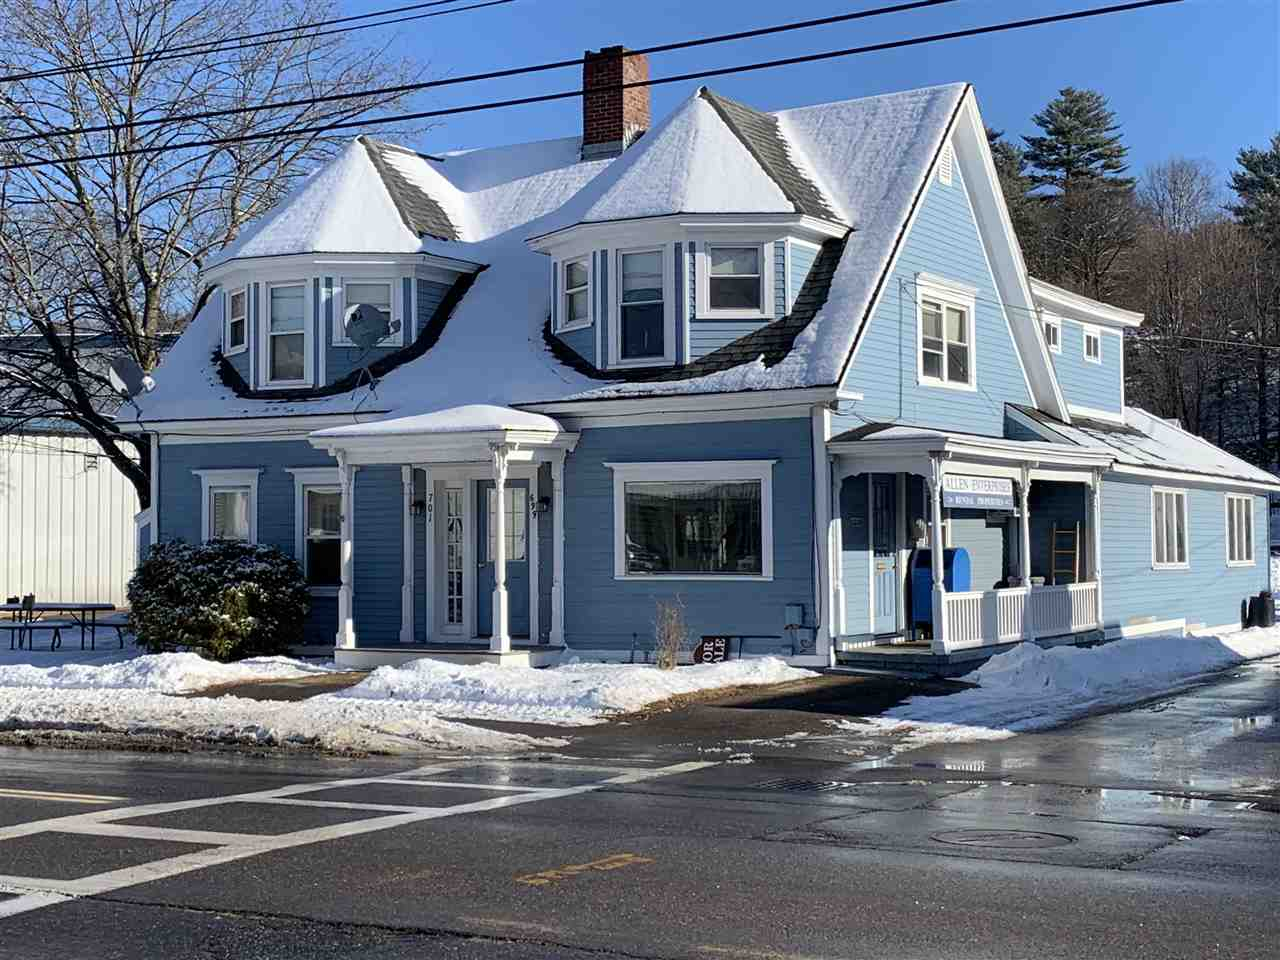 Photo of 699-701 Union Ave Laconia NH 03246